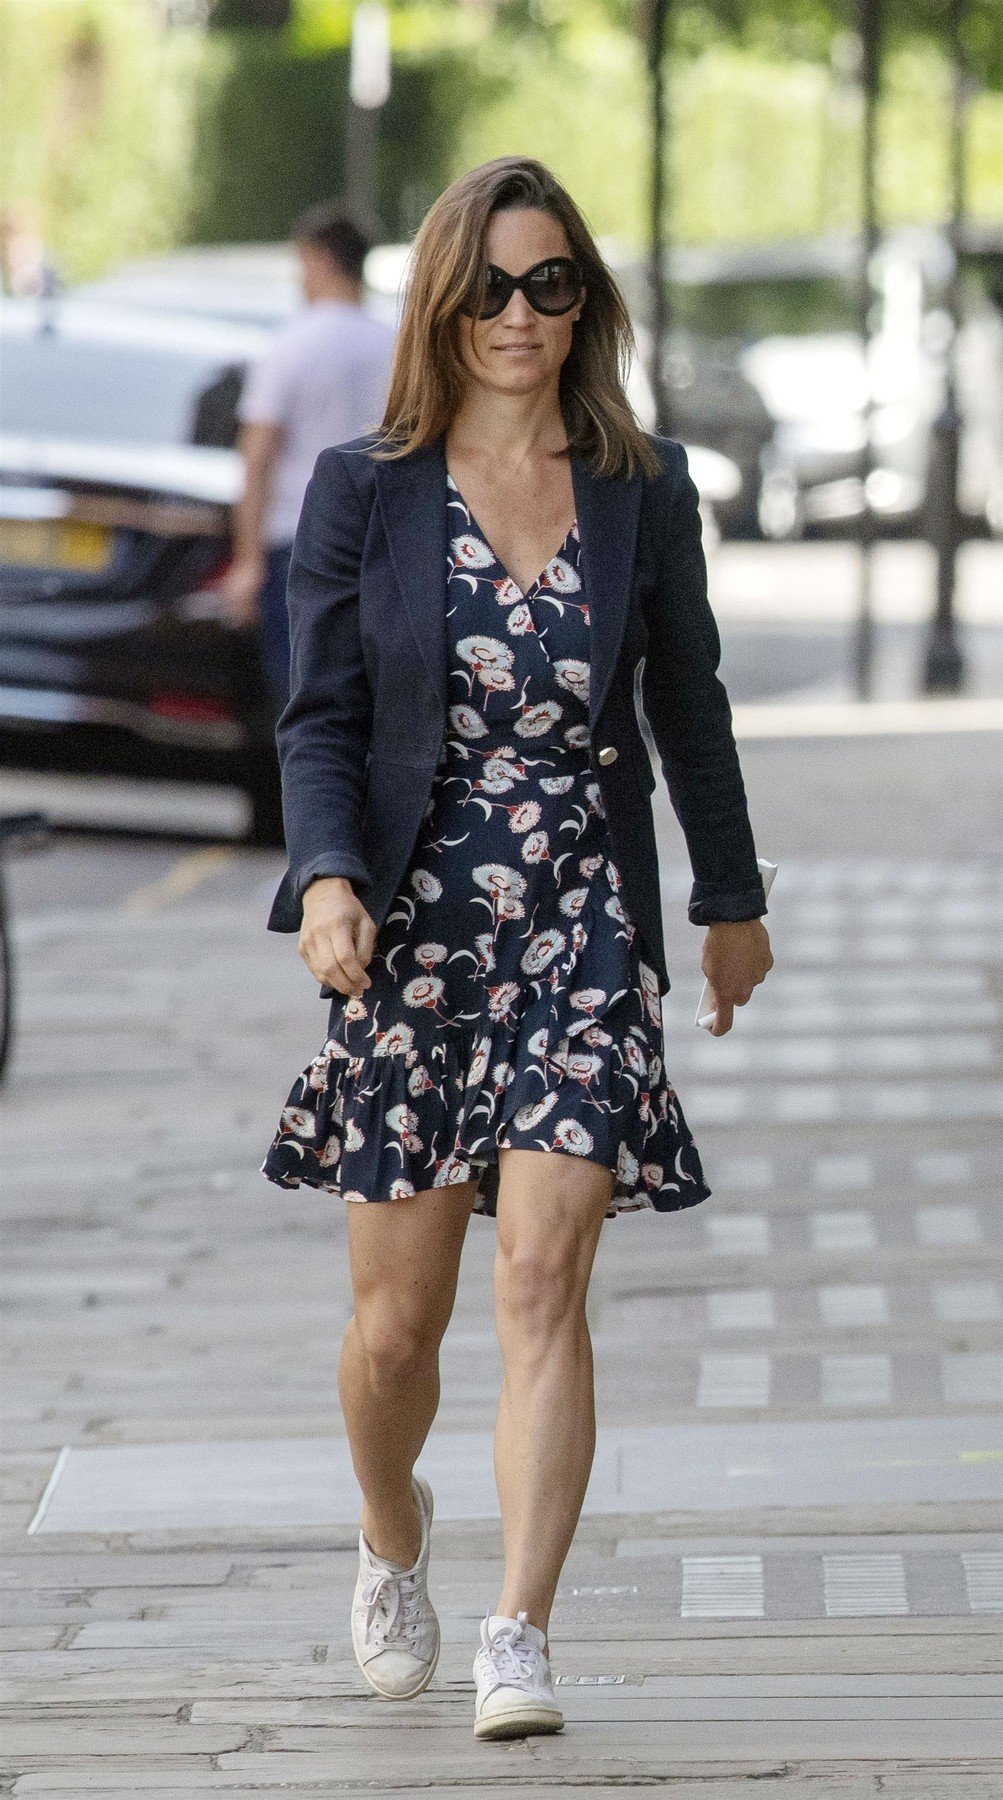 BGUK_1255155 - London, UNITED KINGDOM  -  *EXCLUSIVE*  - WEB MUST CALL FOR PRICING - Pregnant Pippa Middleton pictured showing off her super toned muscly legs while out in the sunshine in London, Pippa also shows she a fan of an apple a day keeps the doctor away.  Pictured: Pippa Middleton    *UK Clients - Pictures Containing Children Please Pixelate Face Prior To Publication*, Image: 374108227, License: Rights-managed, Restrictions: , Model Release: no, Credit line: Profimedia, Xposurephotos